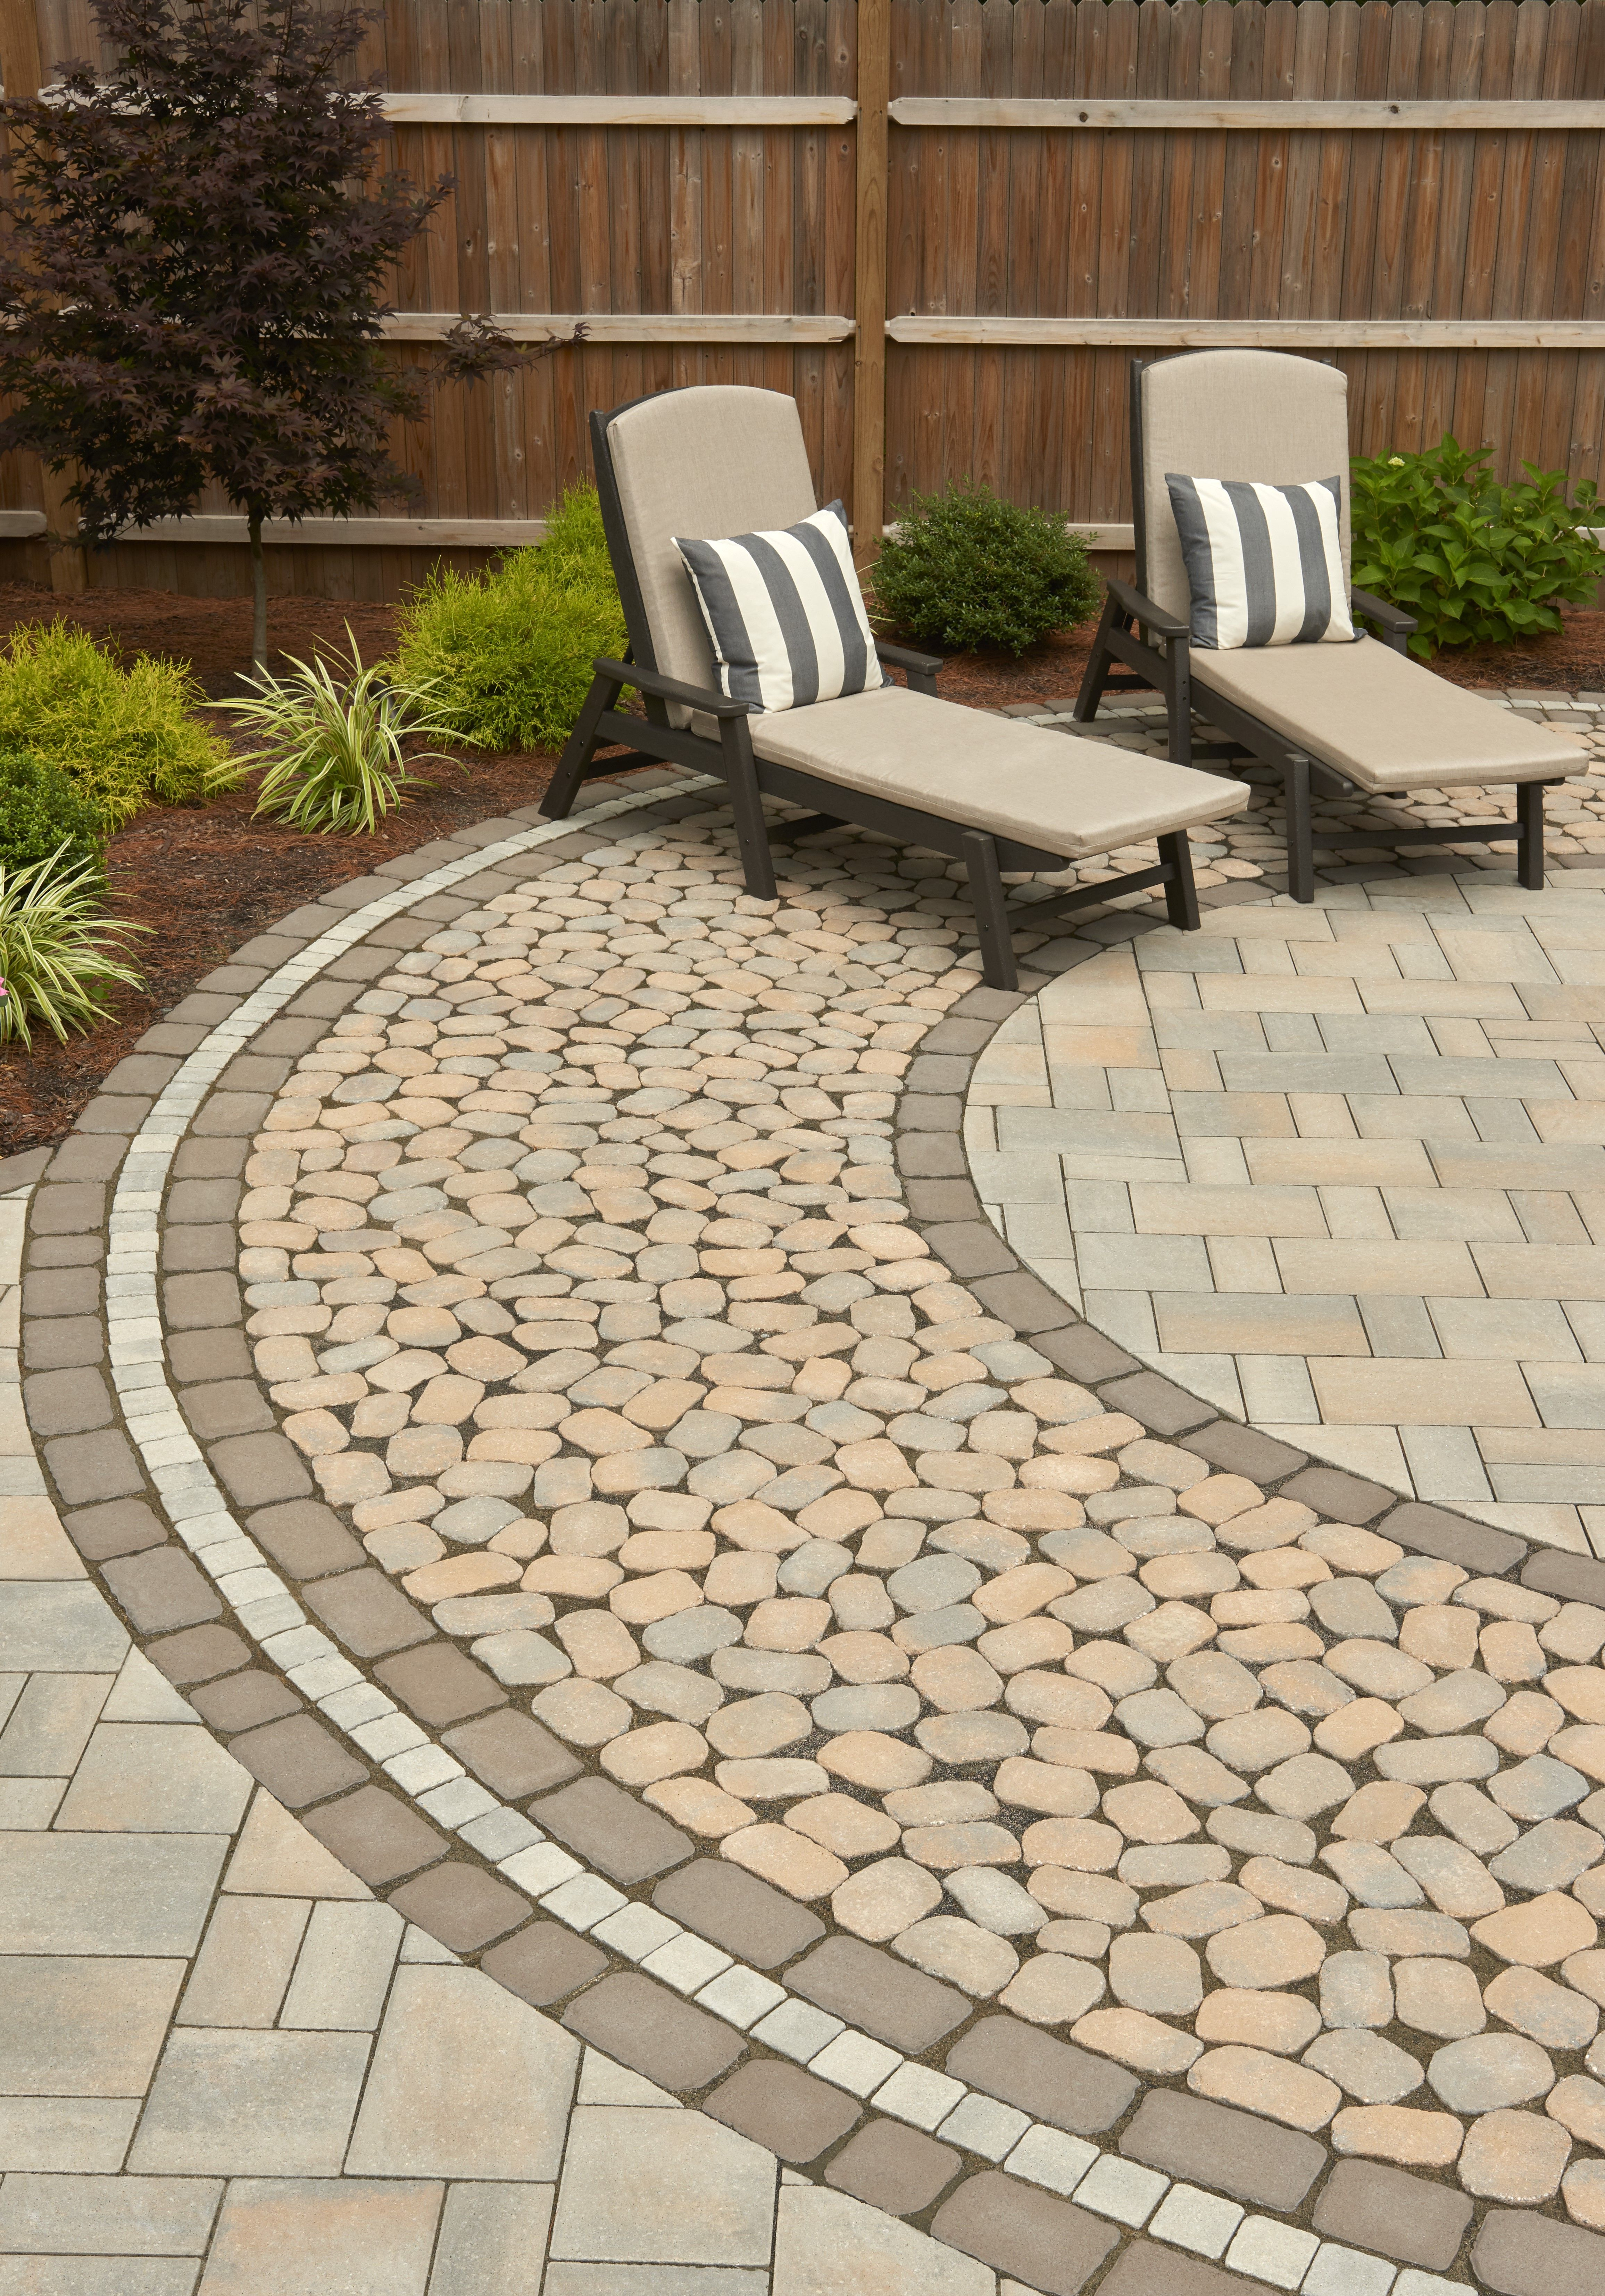 Patio Ideas Patio Pavers Design Patio Backyard Patio Designs